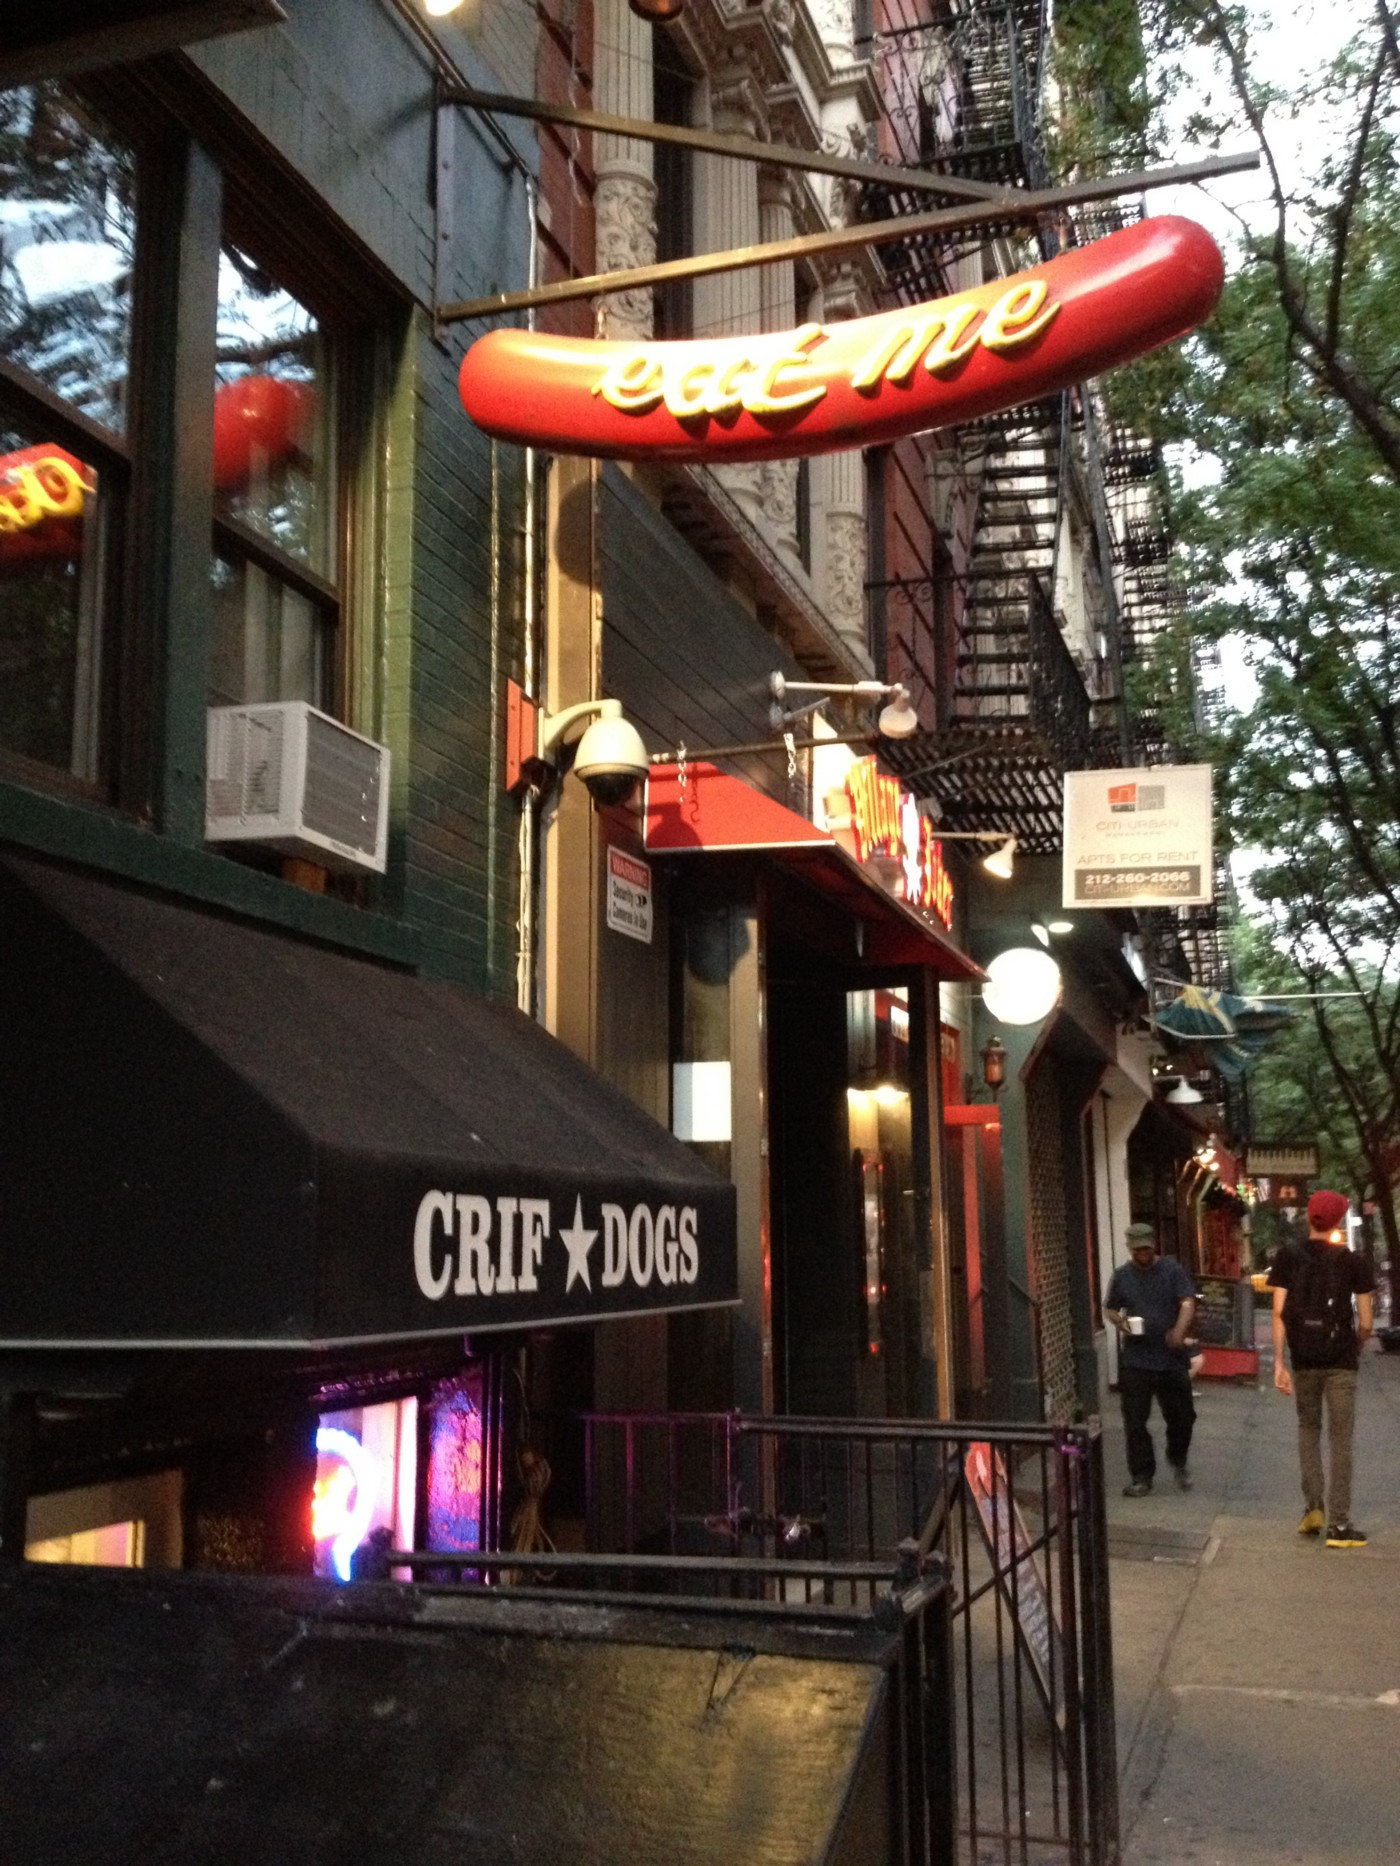 The entrance of the Crif Dogs restaurant in New York City.